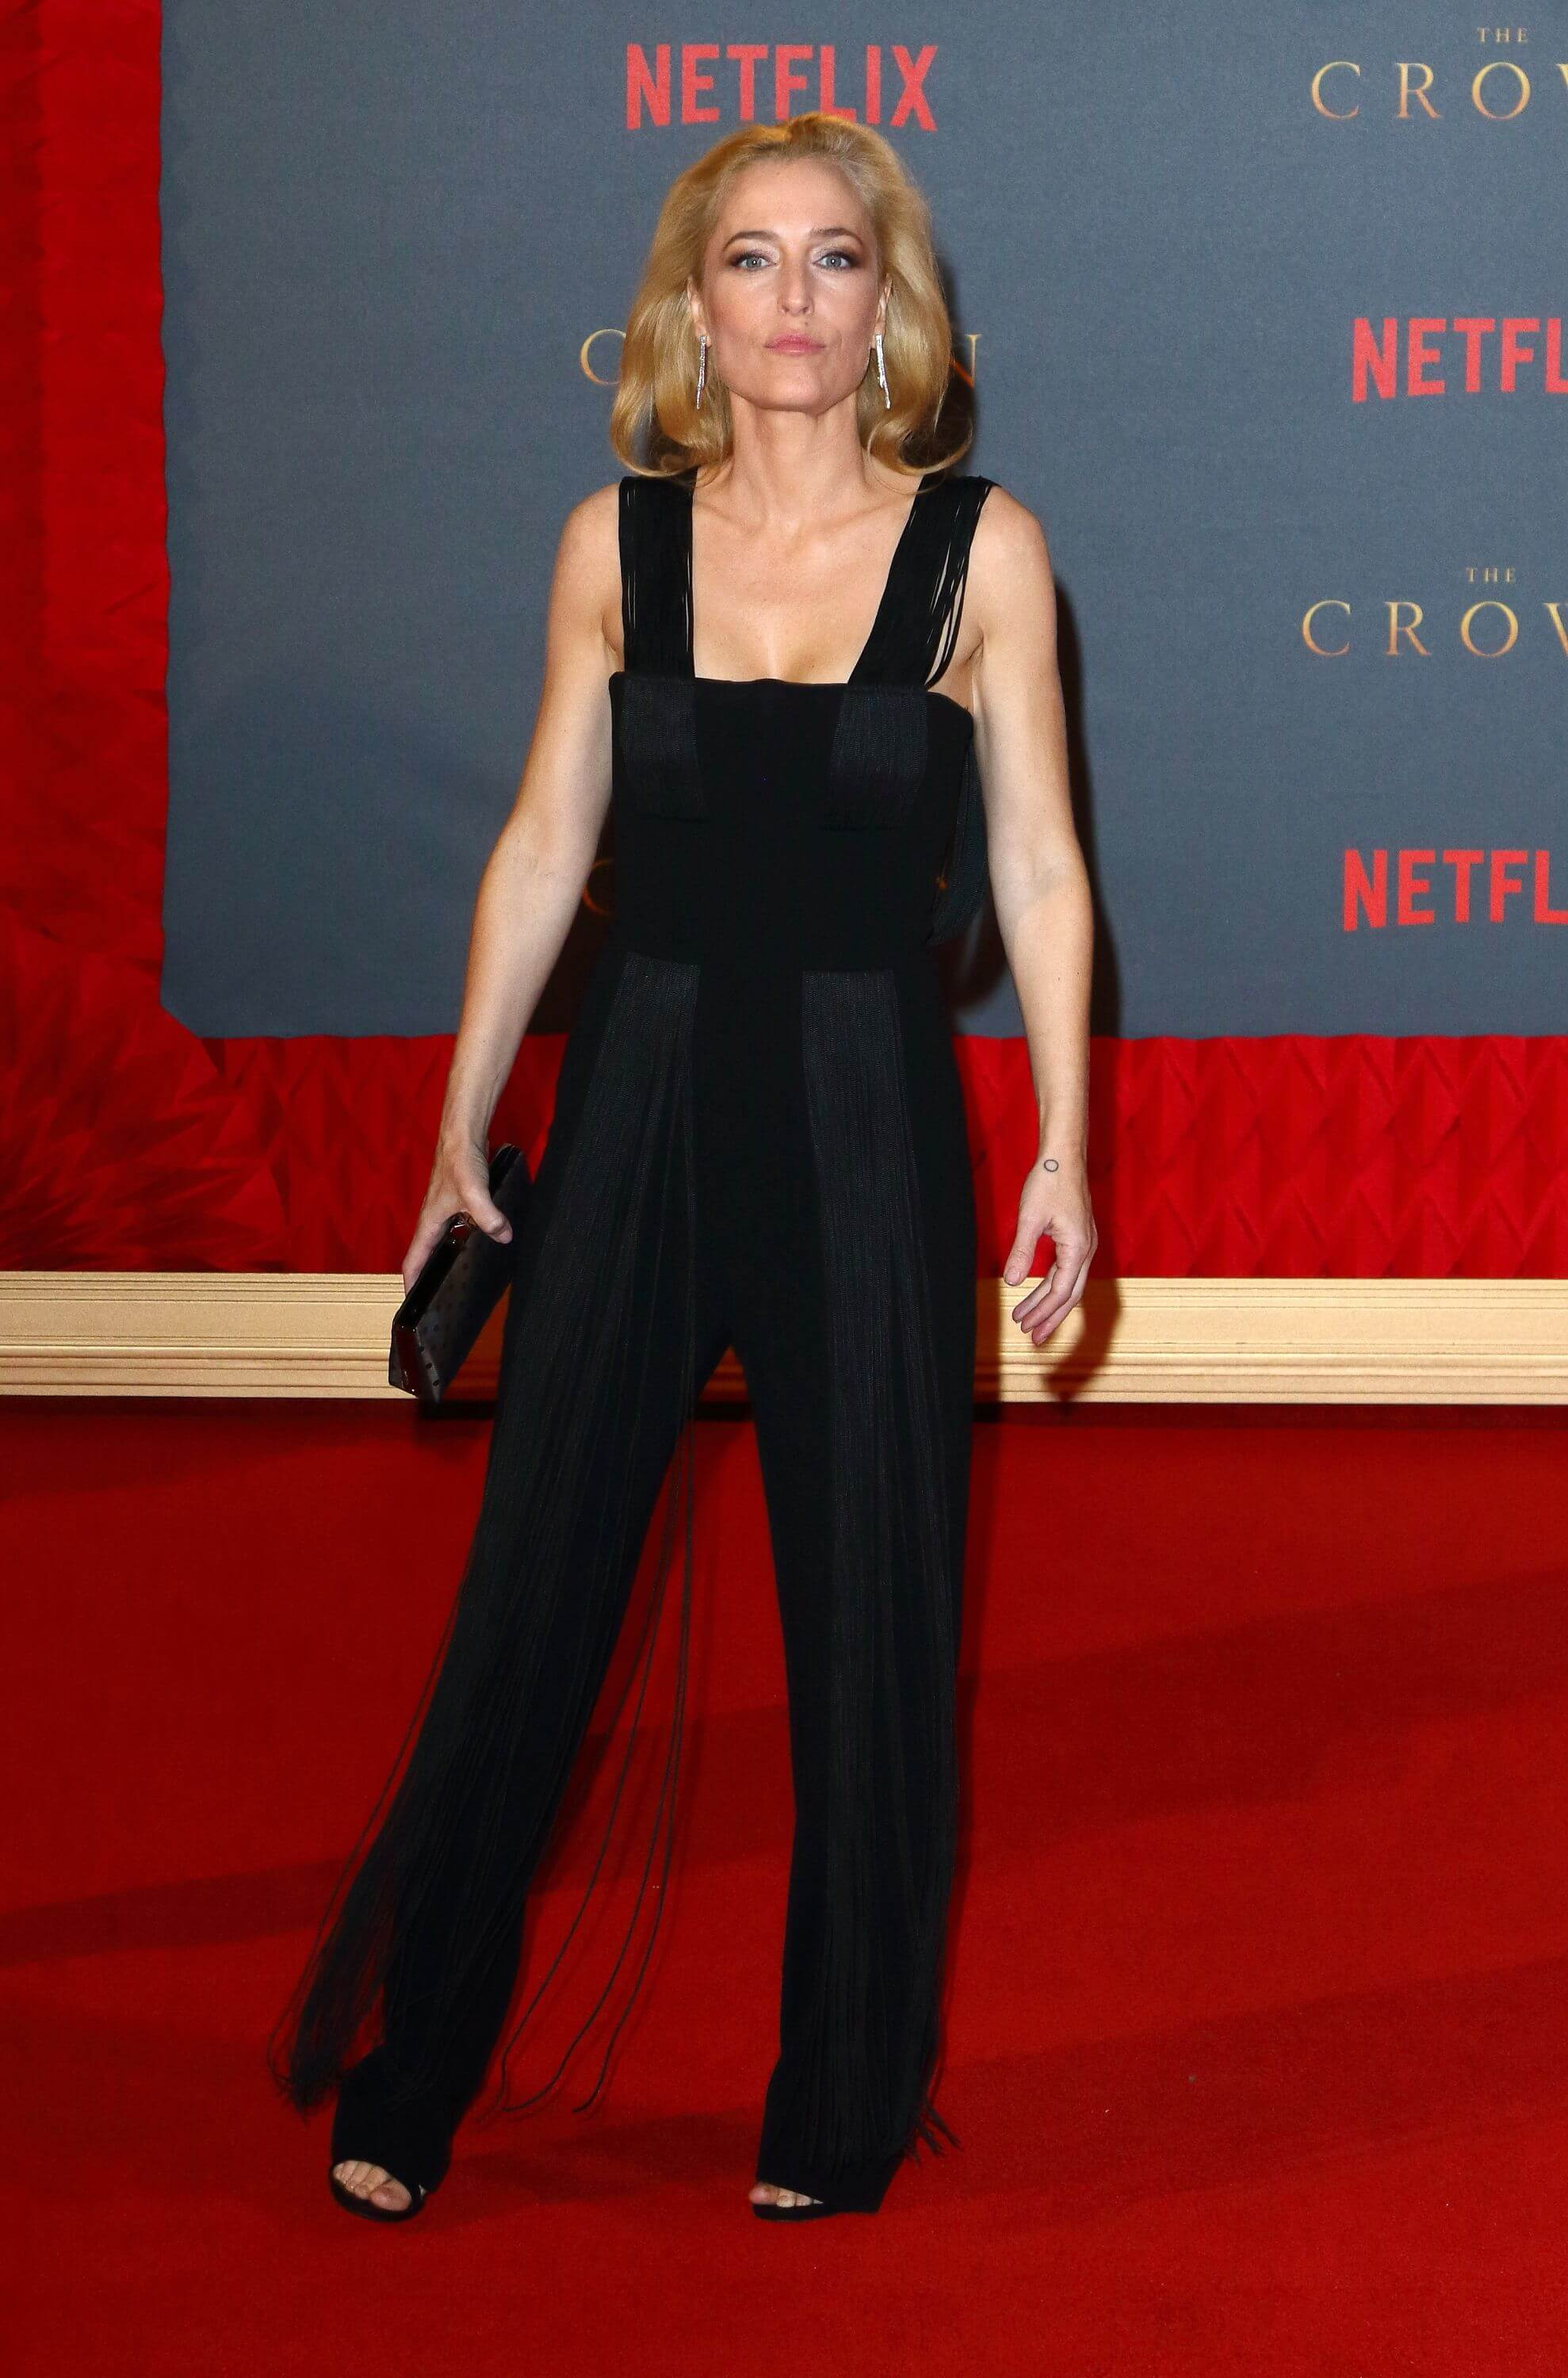 gillian anderson on the red carpet